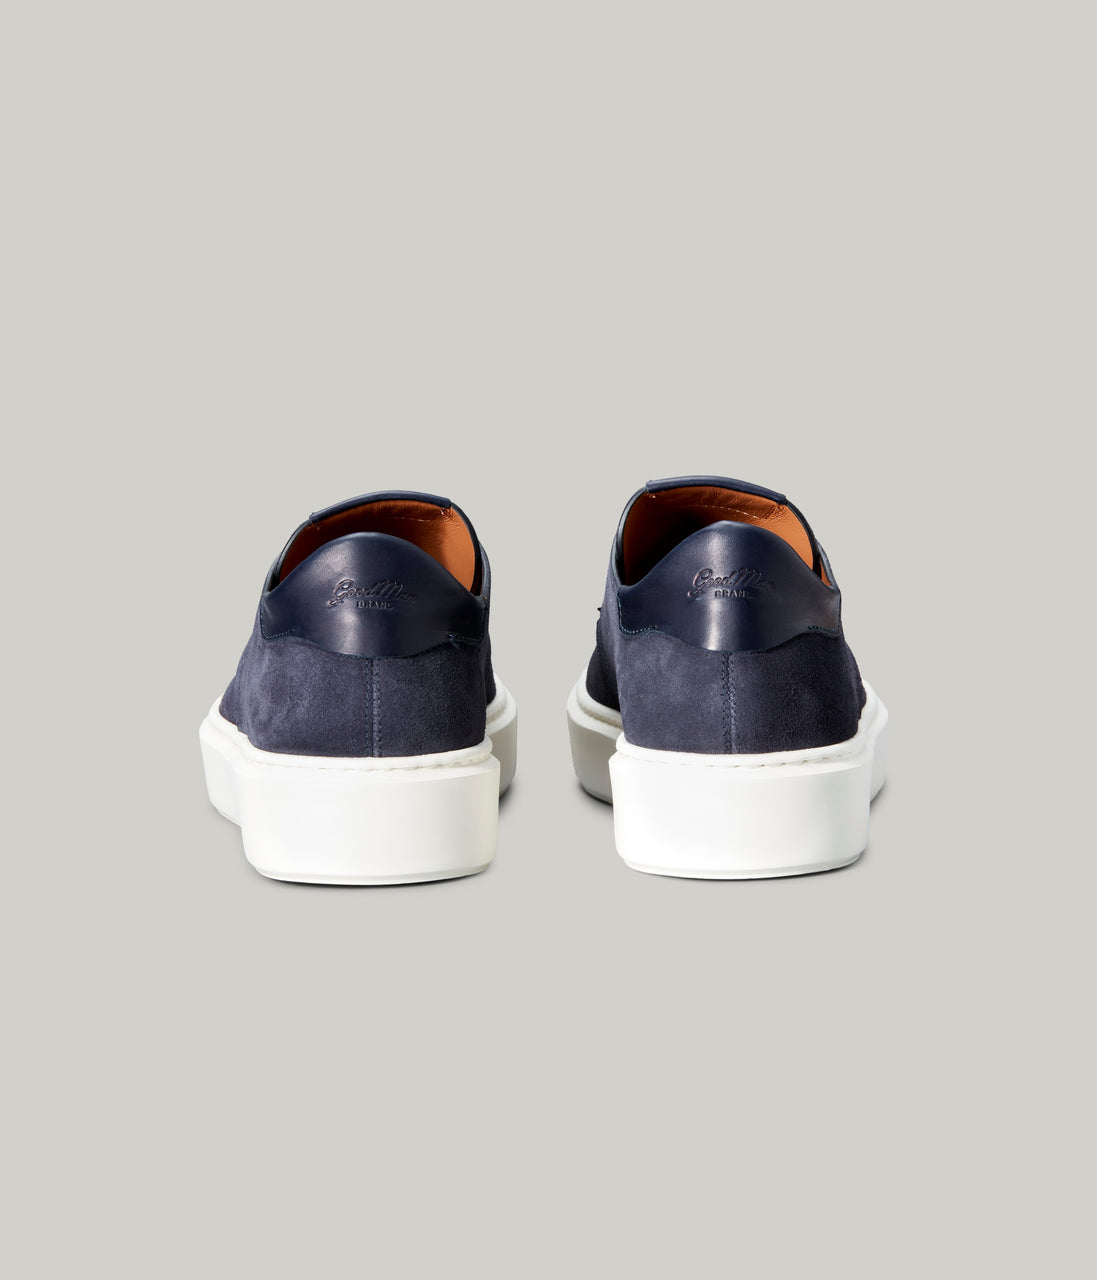 Modern Hybrid Derby Shoe - Navy - Good Man Brand - Modern Hybrid Derby Shoe - Navy